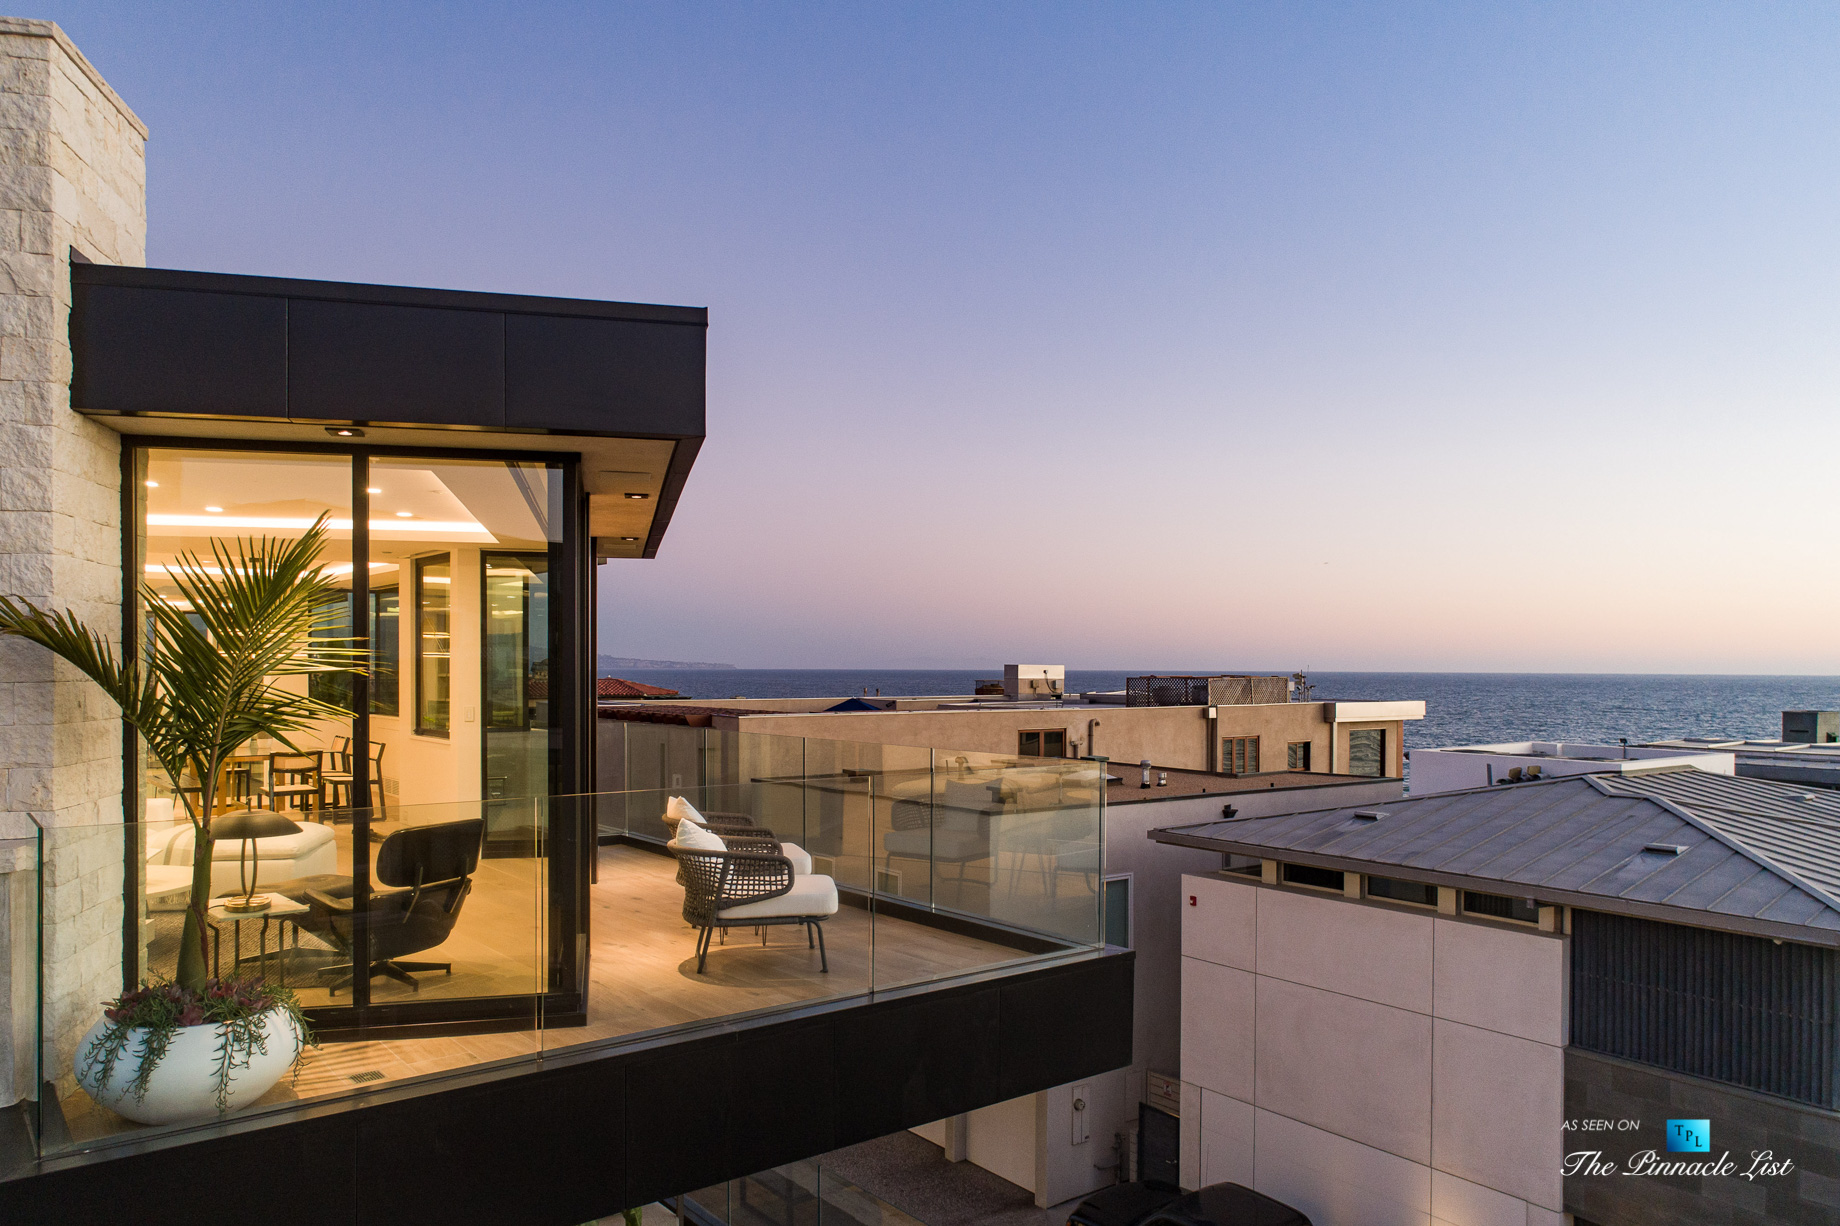 2016 Ocean Dr, Manhattan Beach, CA, USA – Master Bedroom Balcony Sunset View – Luxury Real Estate – Modern Ocean View Home